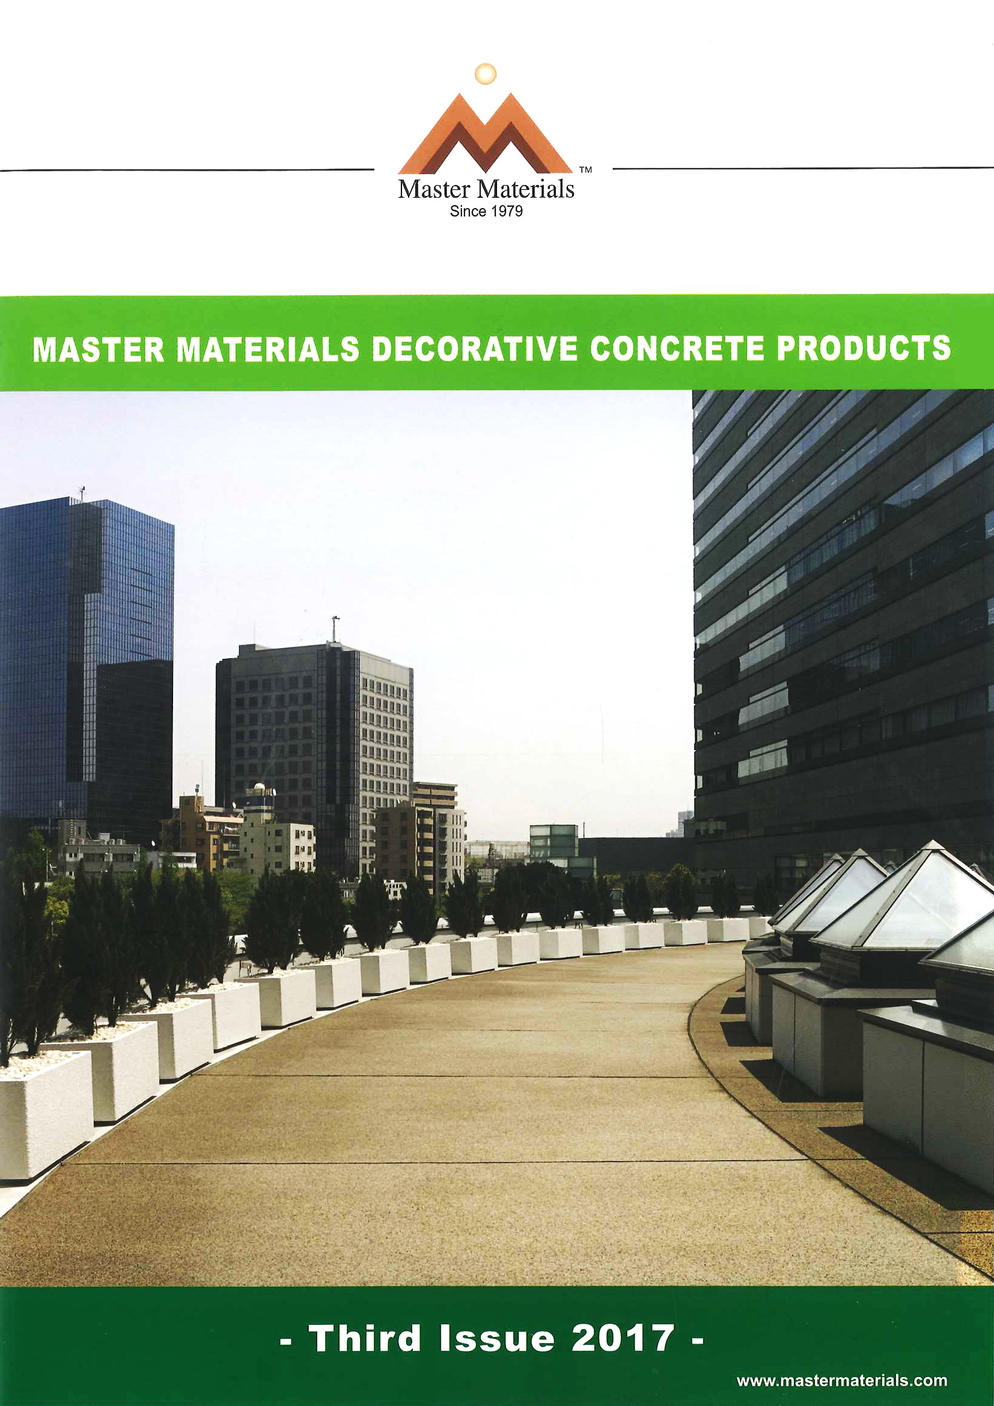 Master Materials Decorative Concrete Products